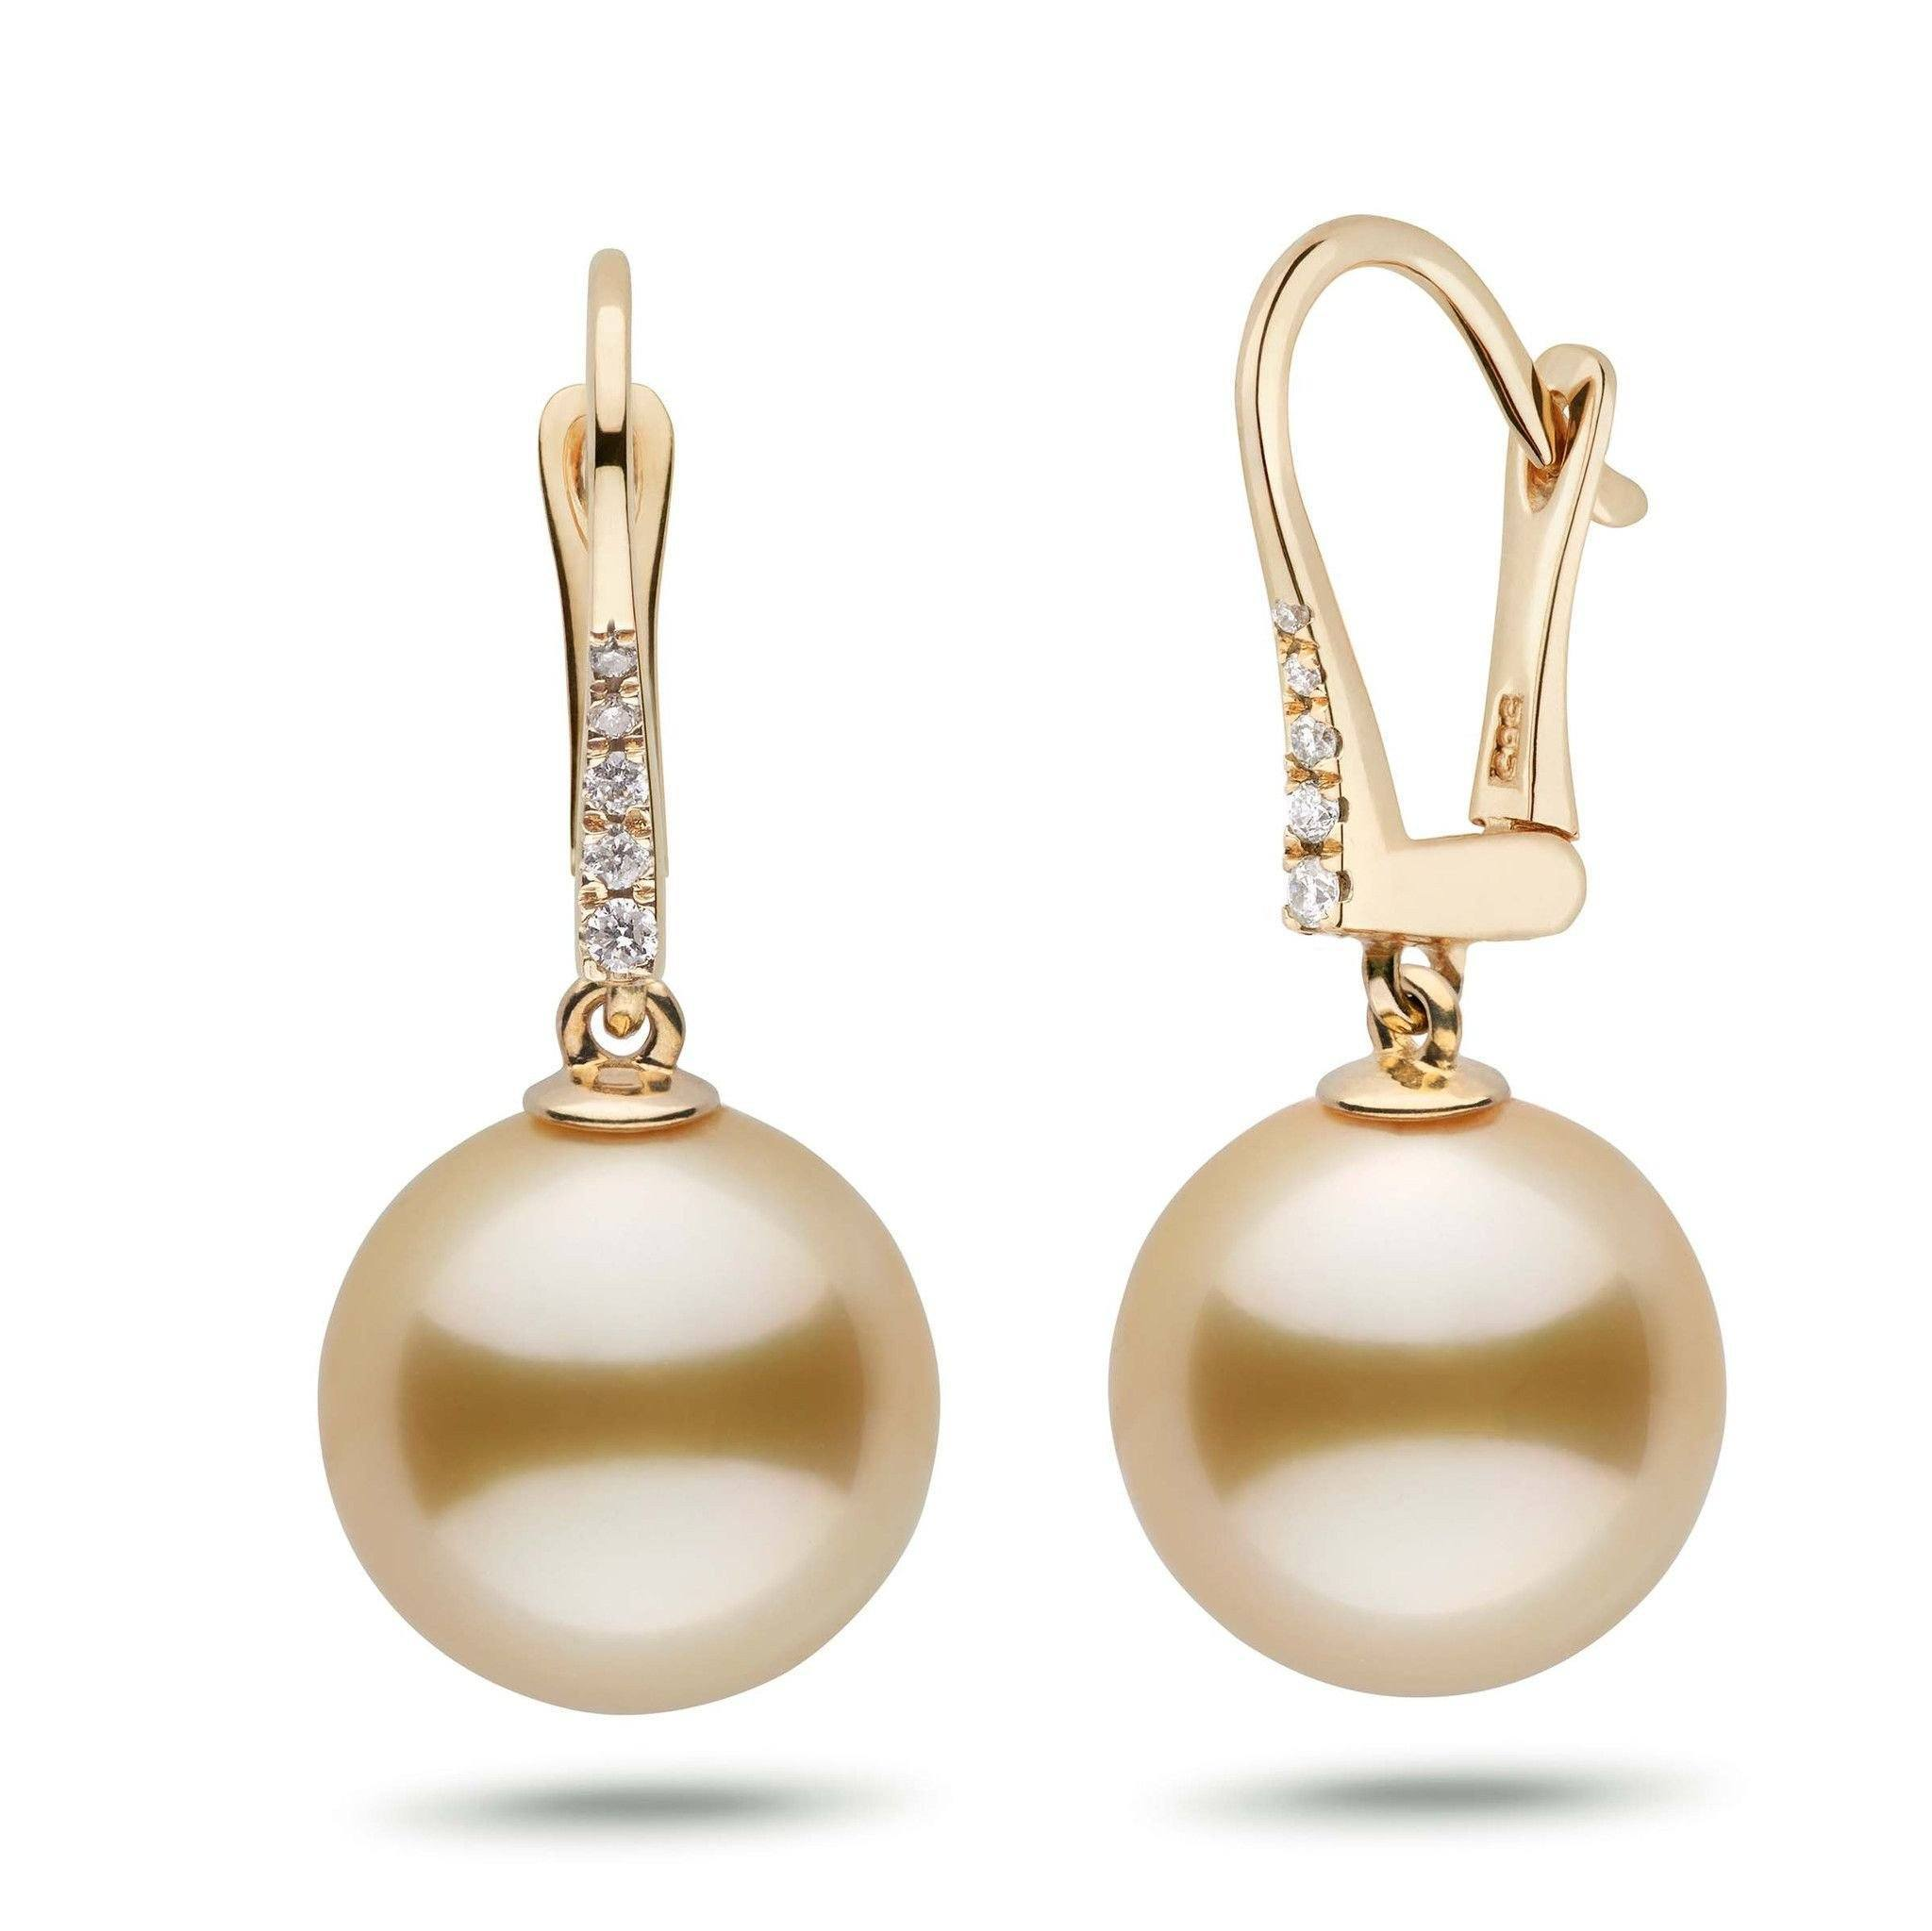 Allure Collection Golden South Sea 12.0-13.0 mm Pearl & Diamond Dangle Earrings